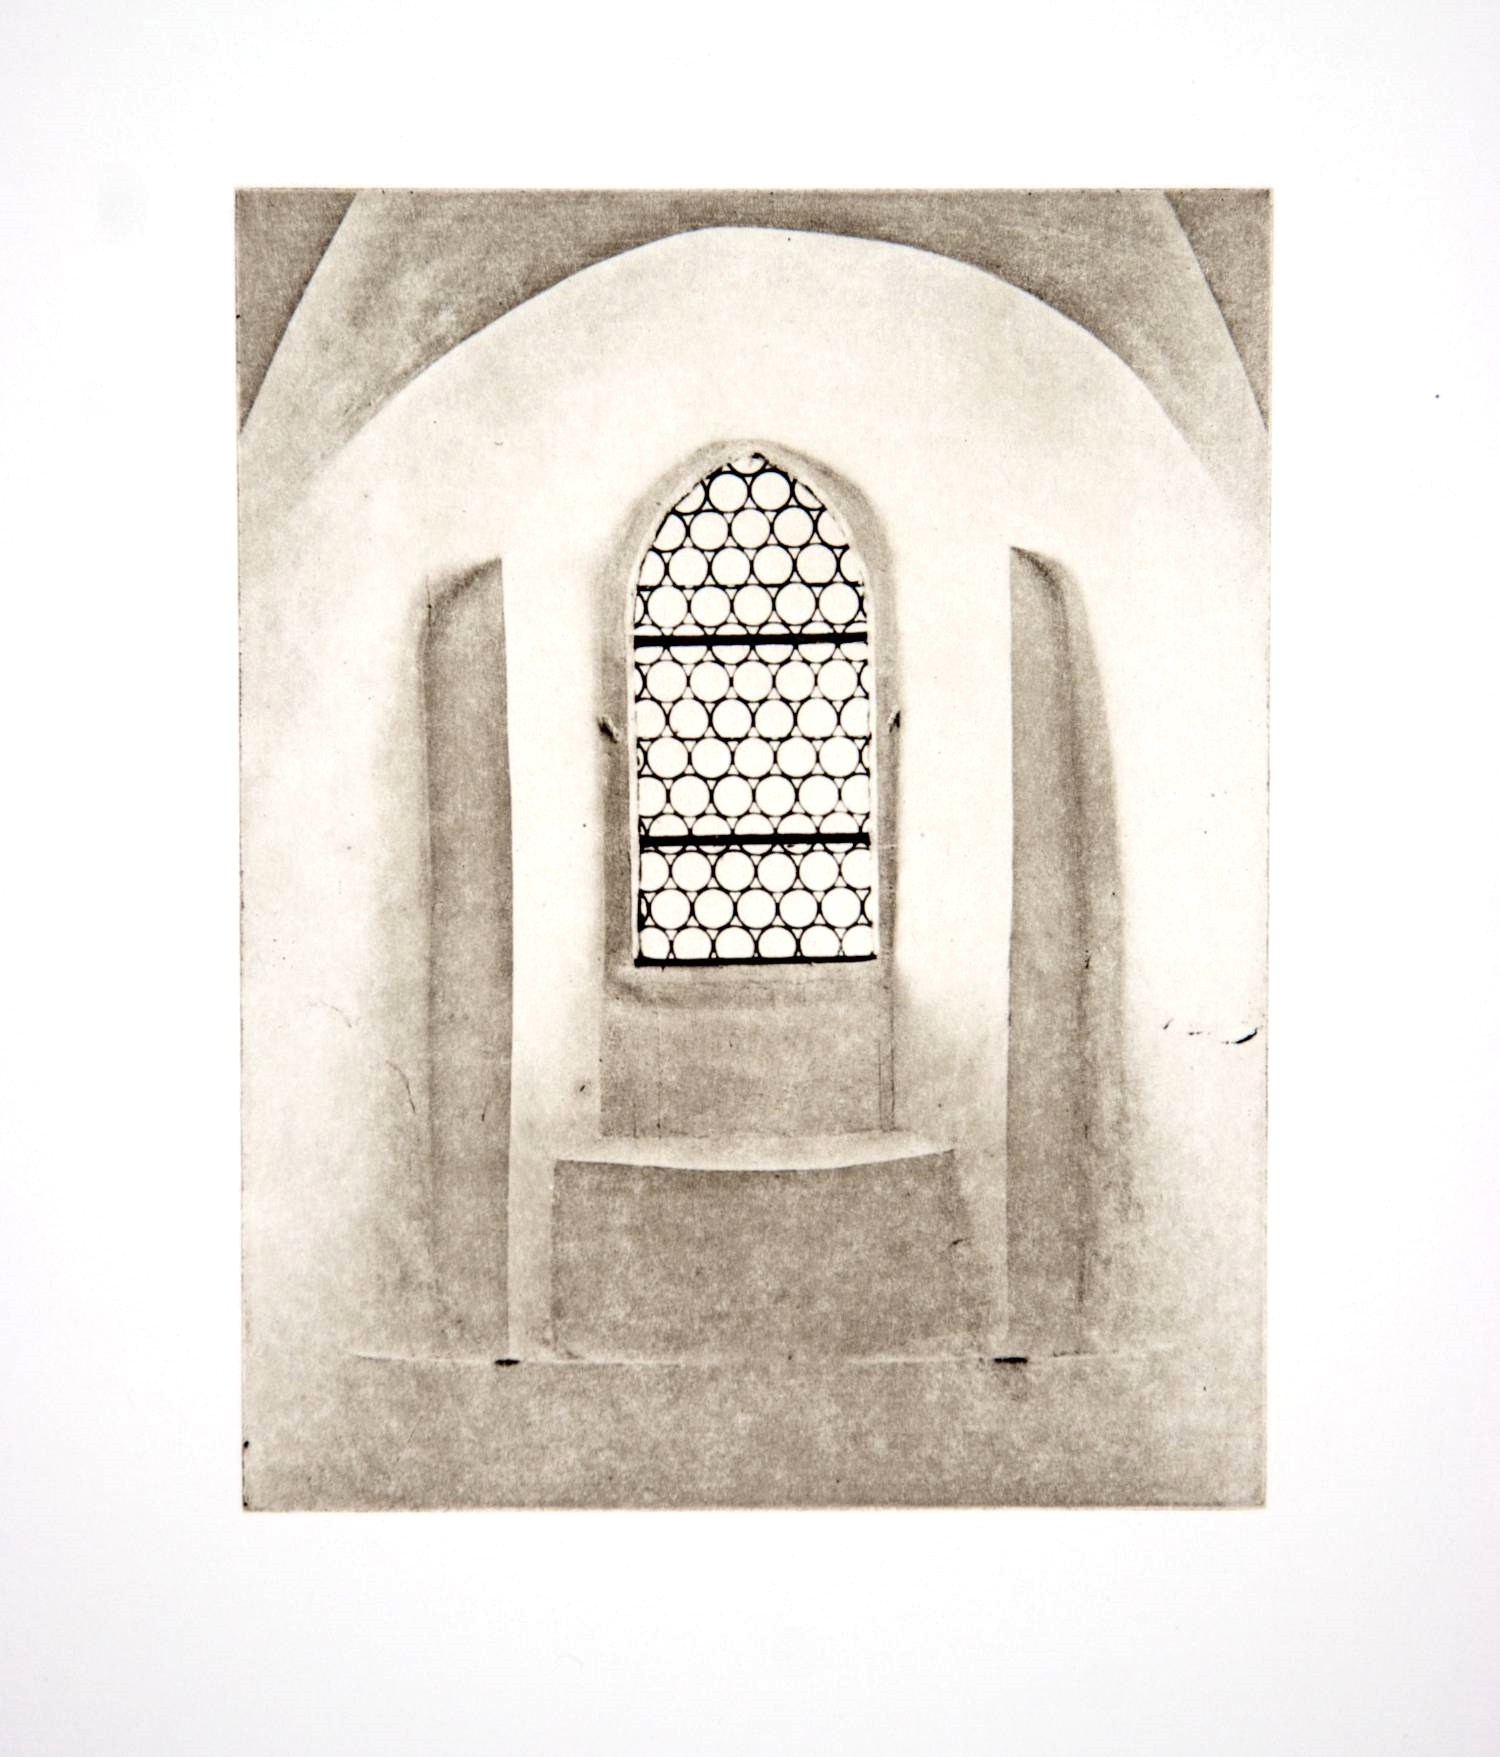 Window at St. Emmeram (Germany)